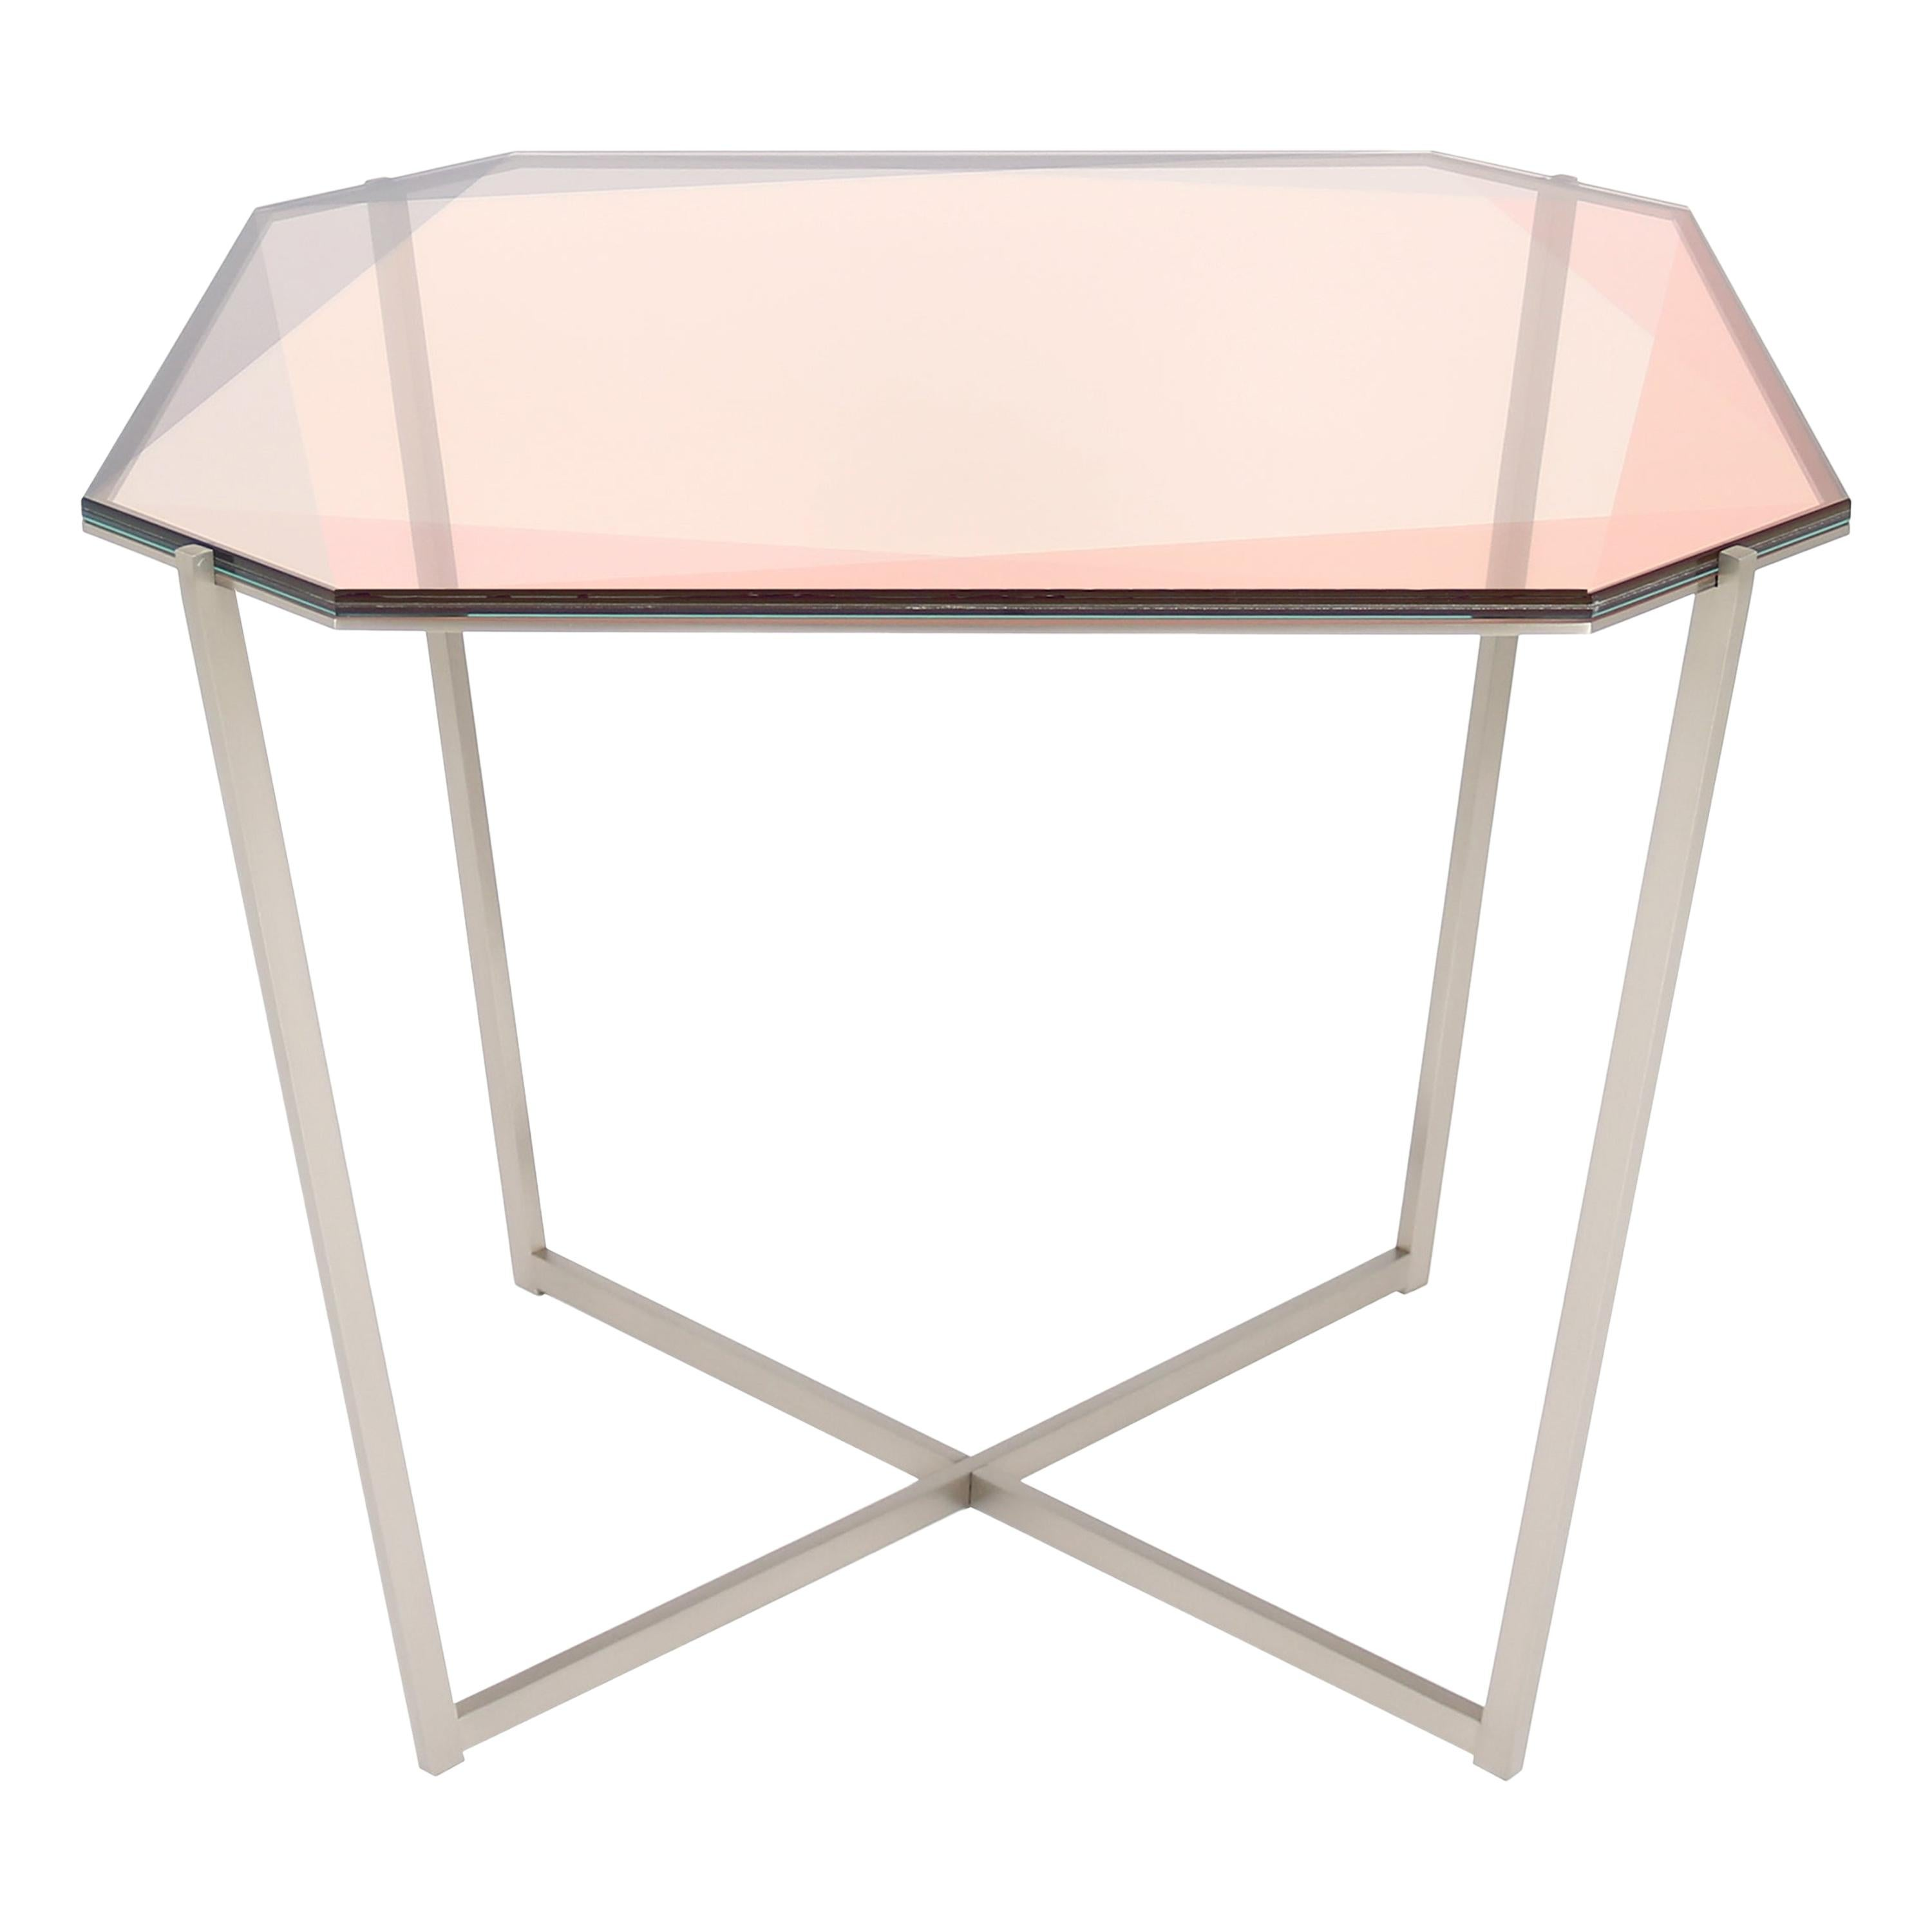 Gem Square Dining / Entry Table-Blush Glass with Steel Base by Debra Folz